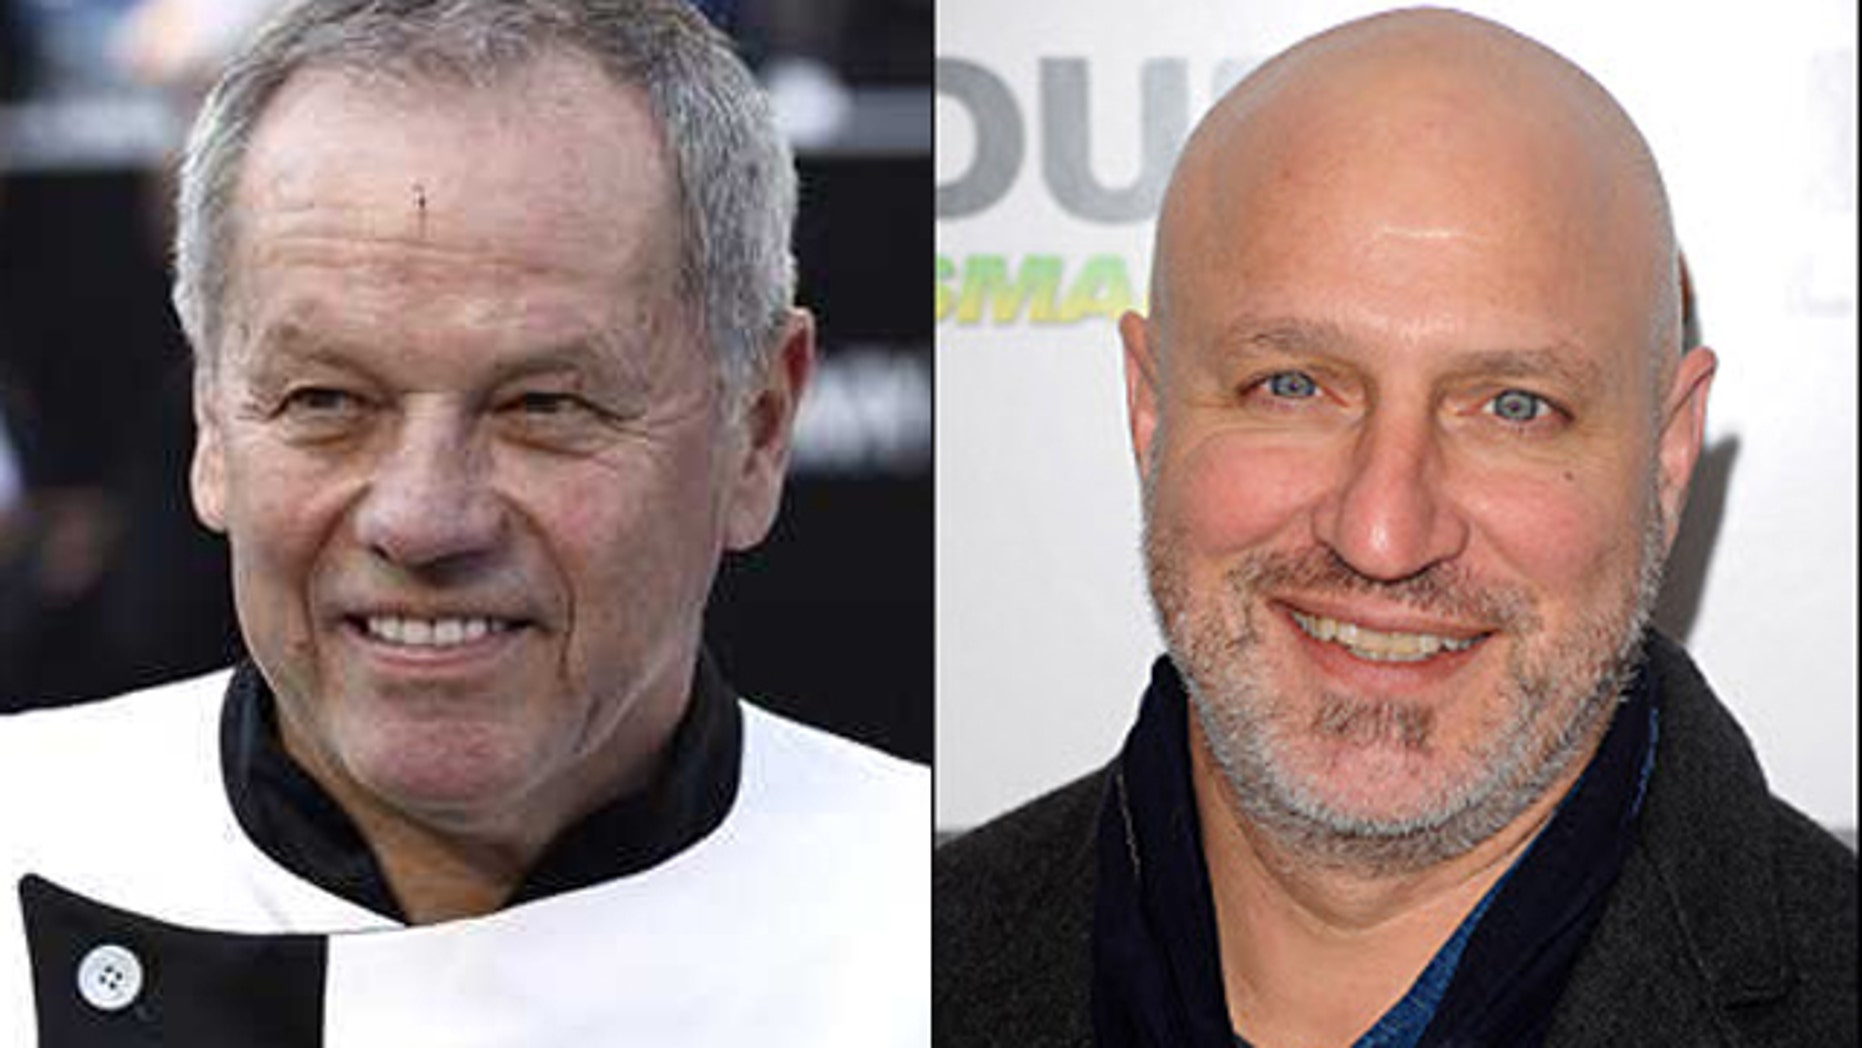 Wofgang Puck and Tom Colicchio